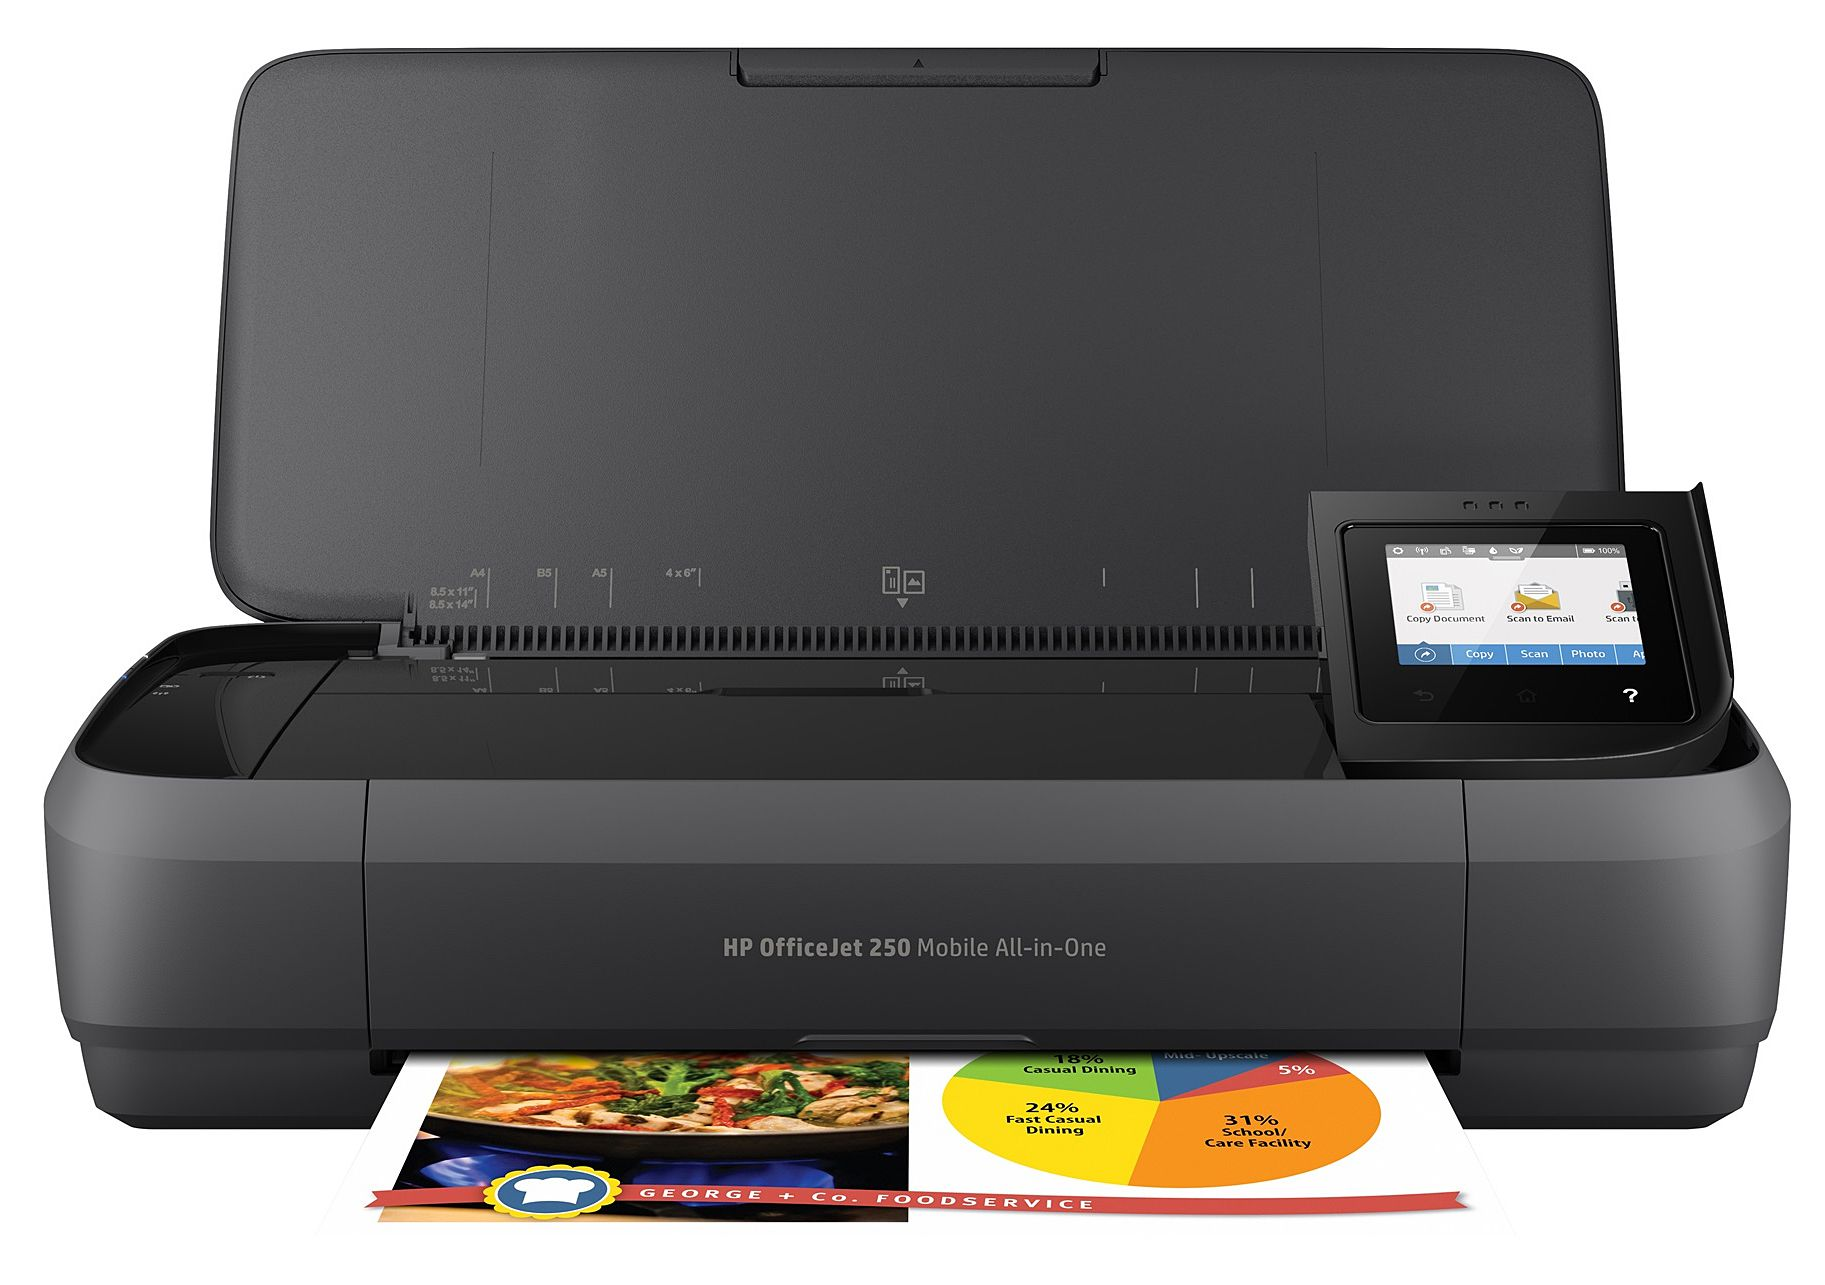 Print Scan Copy Anywhere With HPs Officejet 250 Mobile AIO Printer